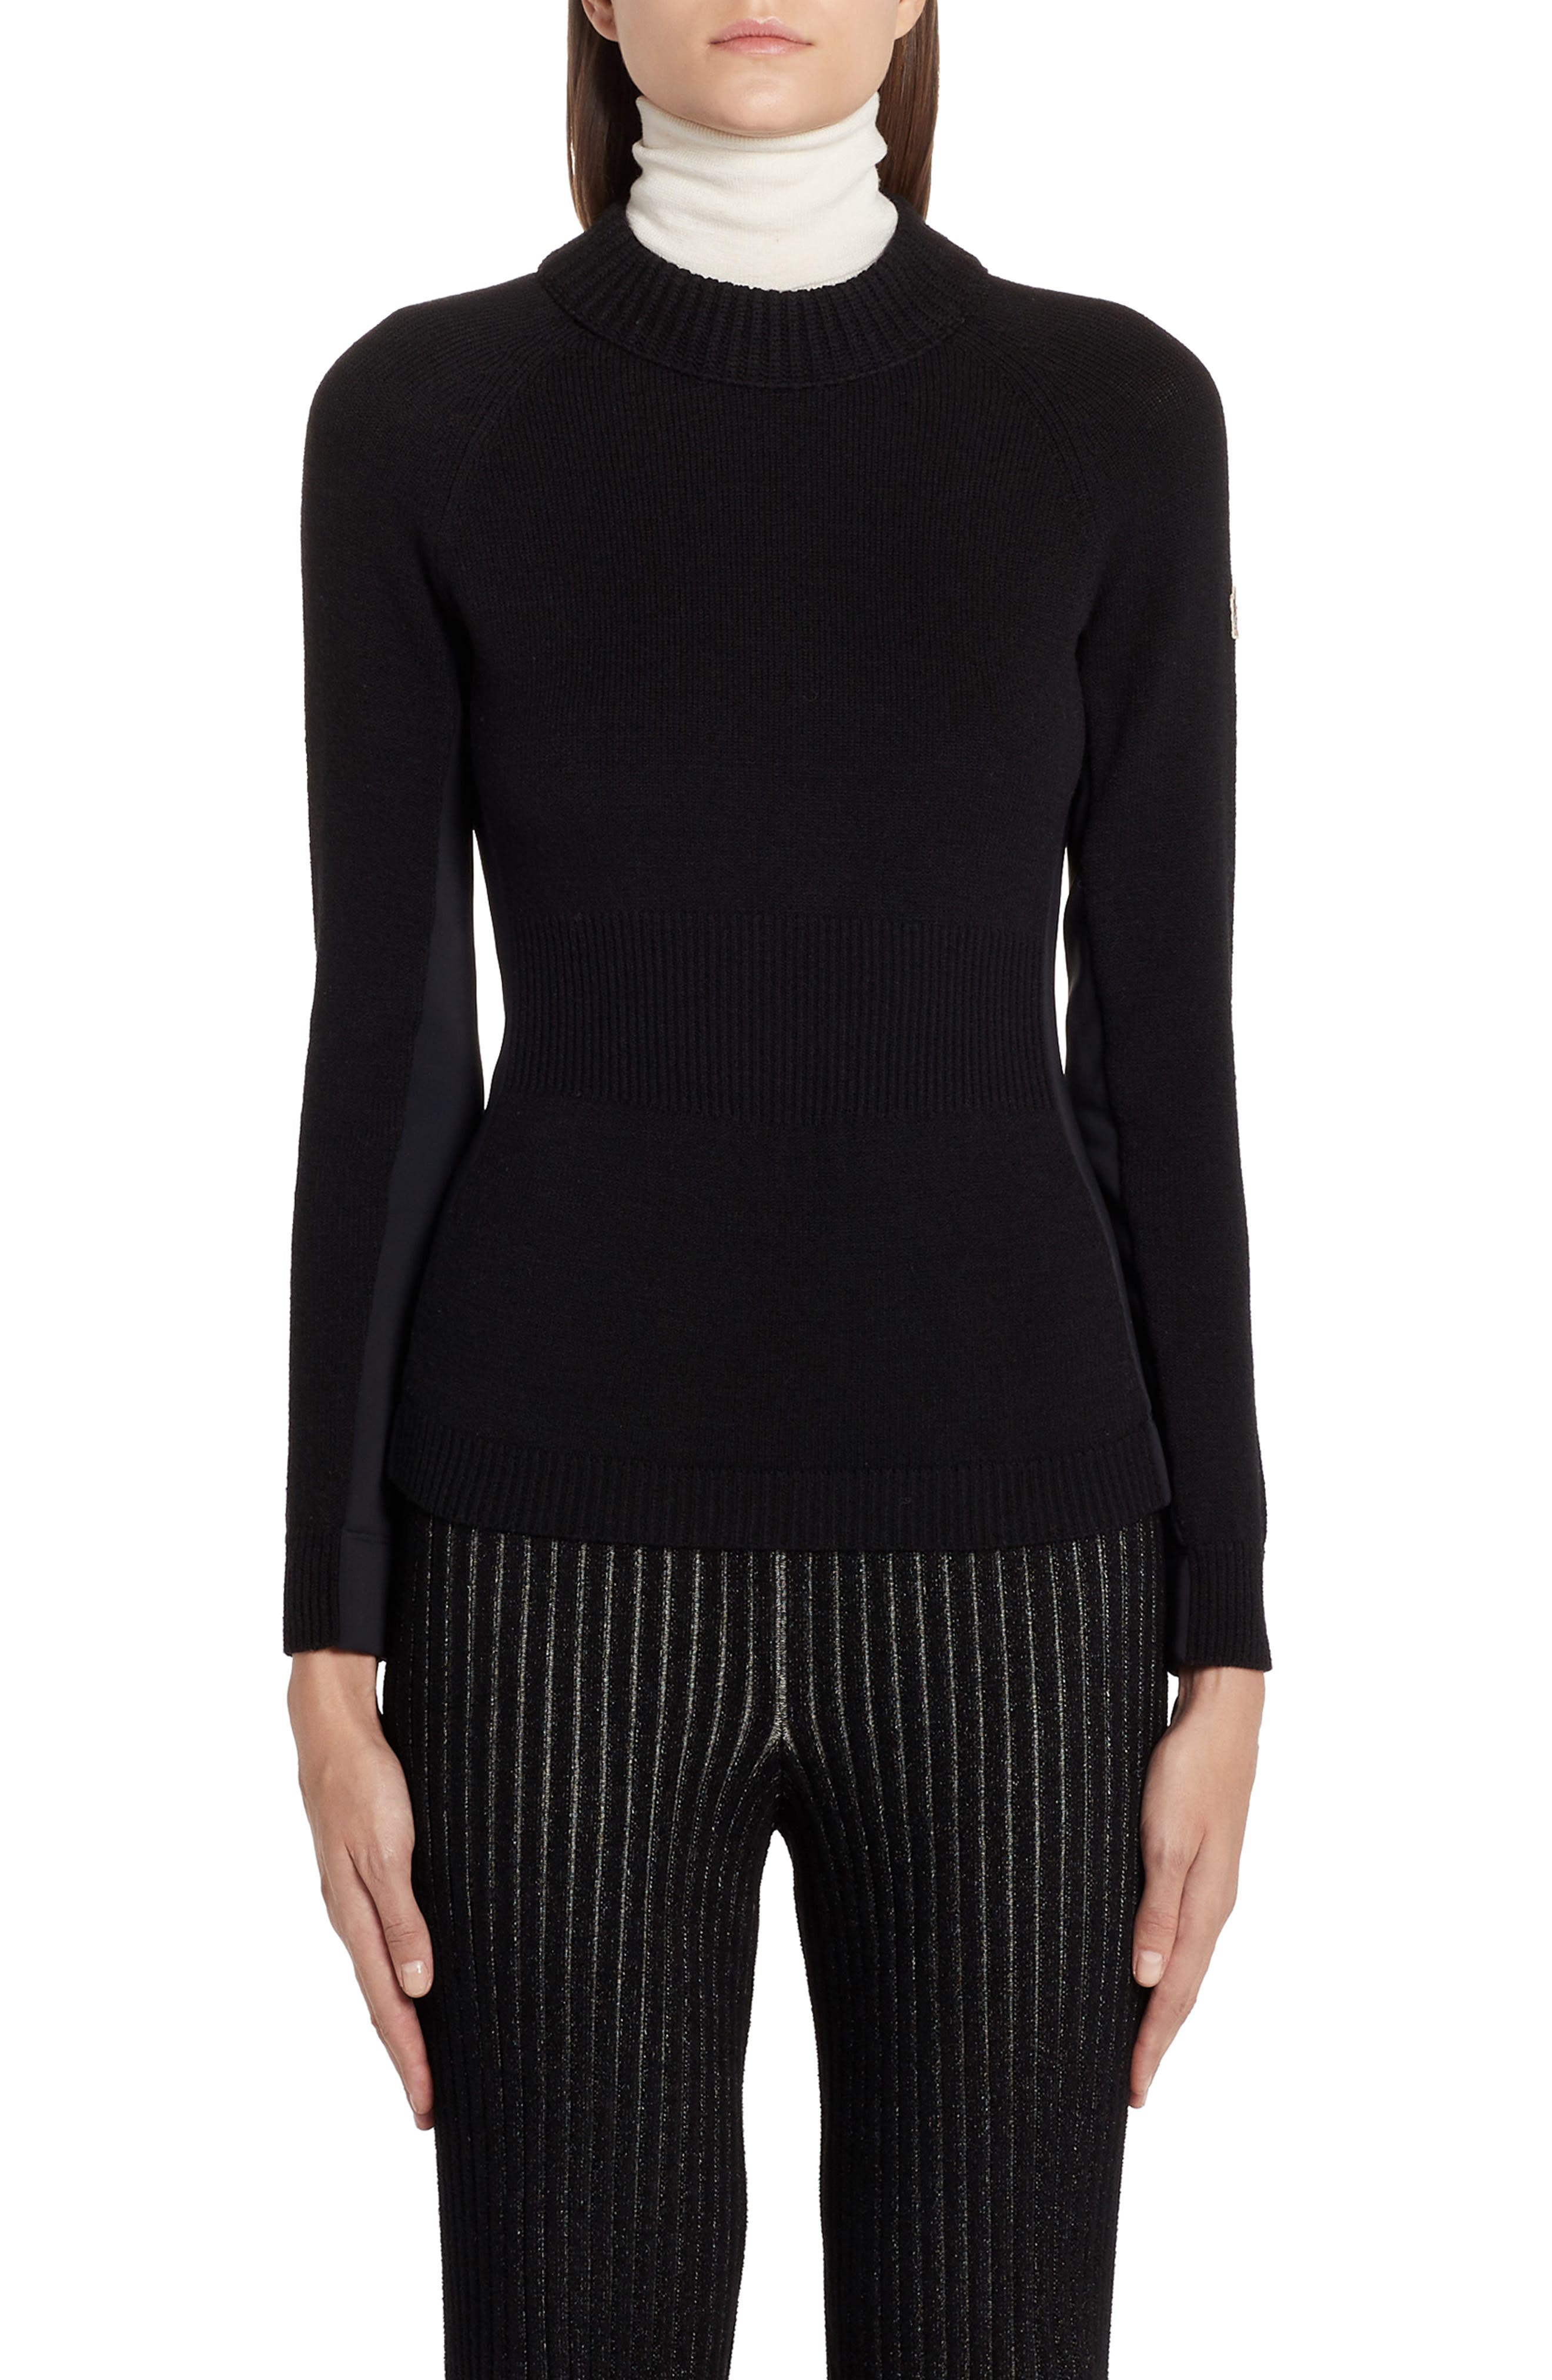 Moncler Tops Multi Contrast Wool Blend Turtleneck Sweater